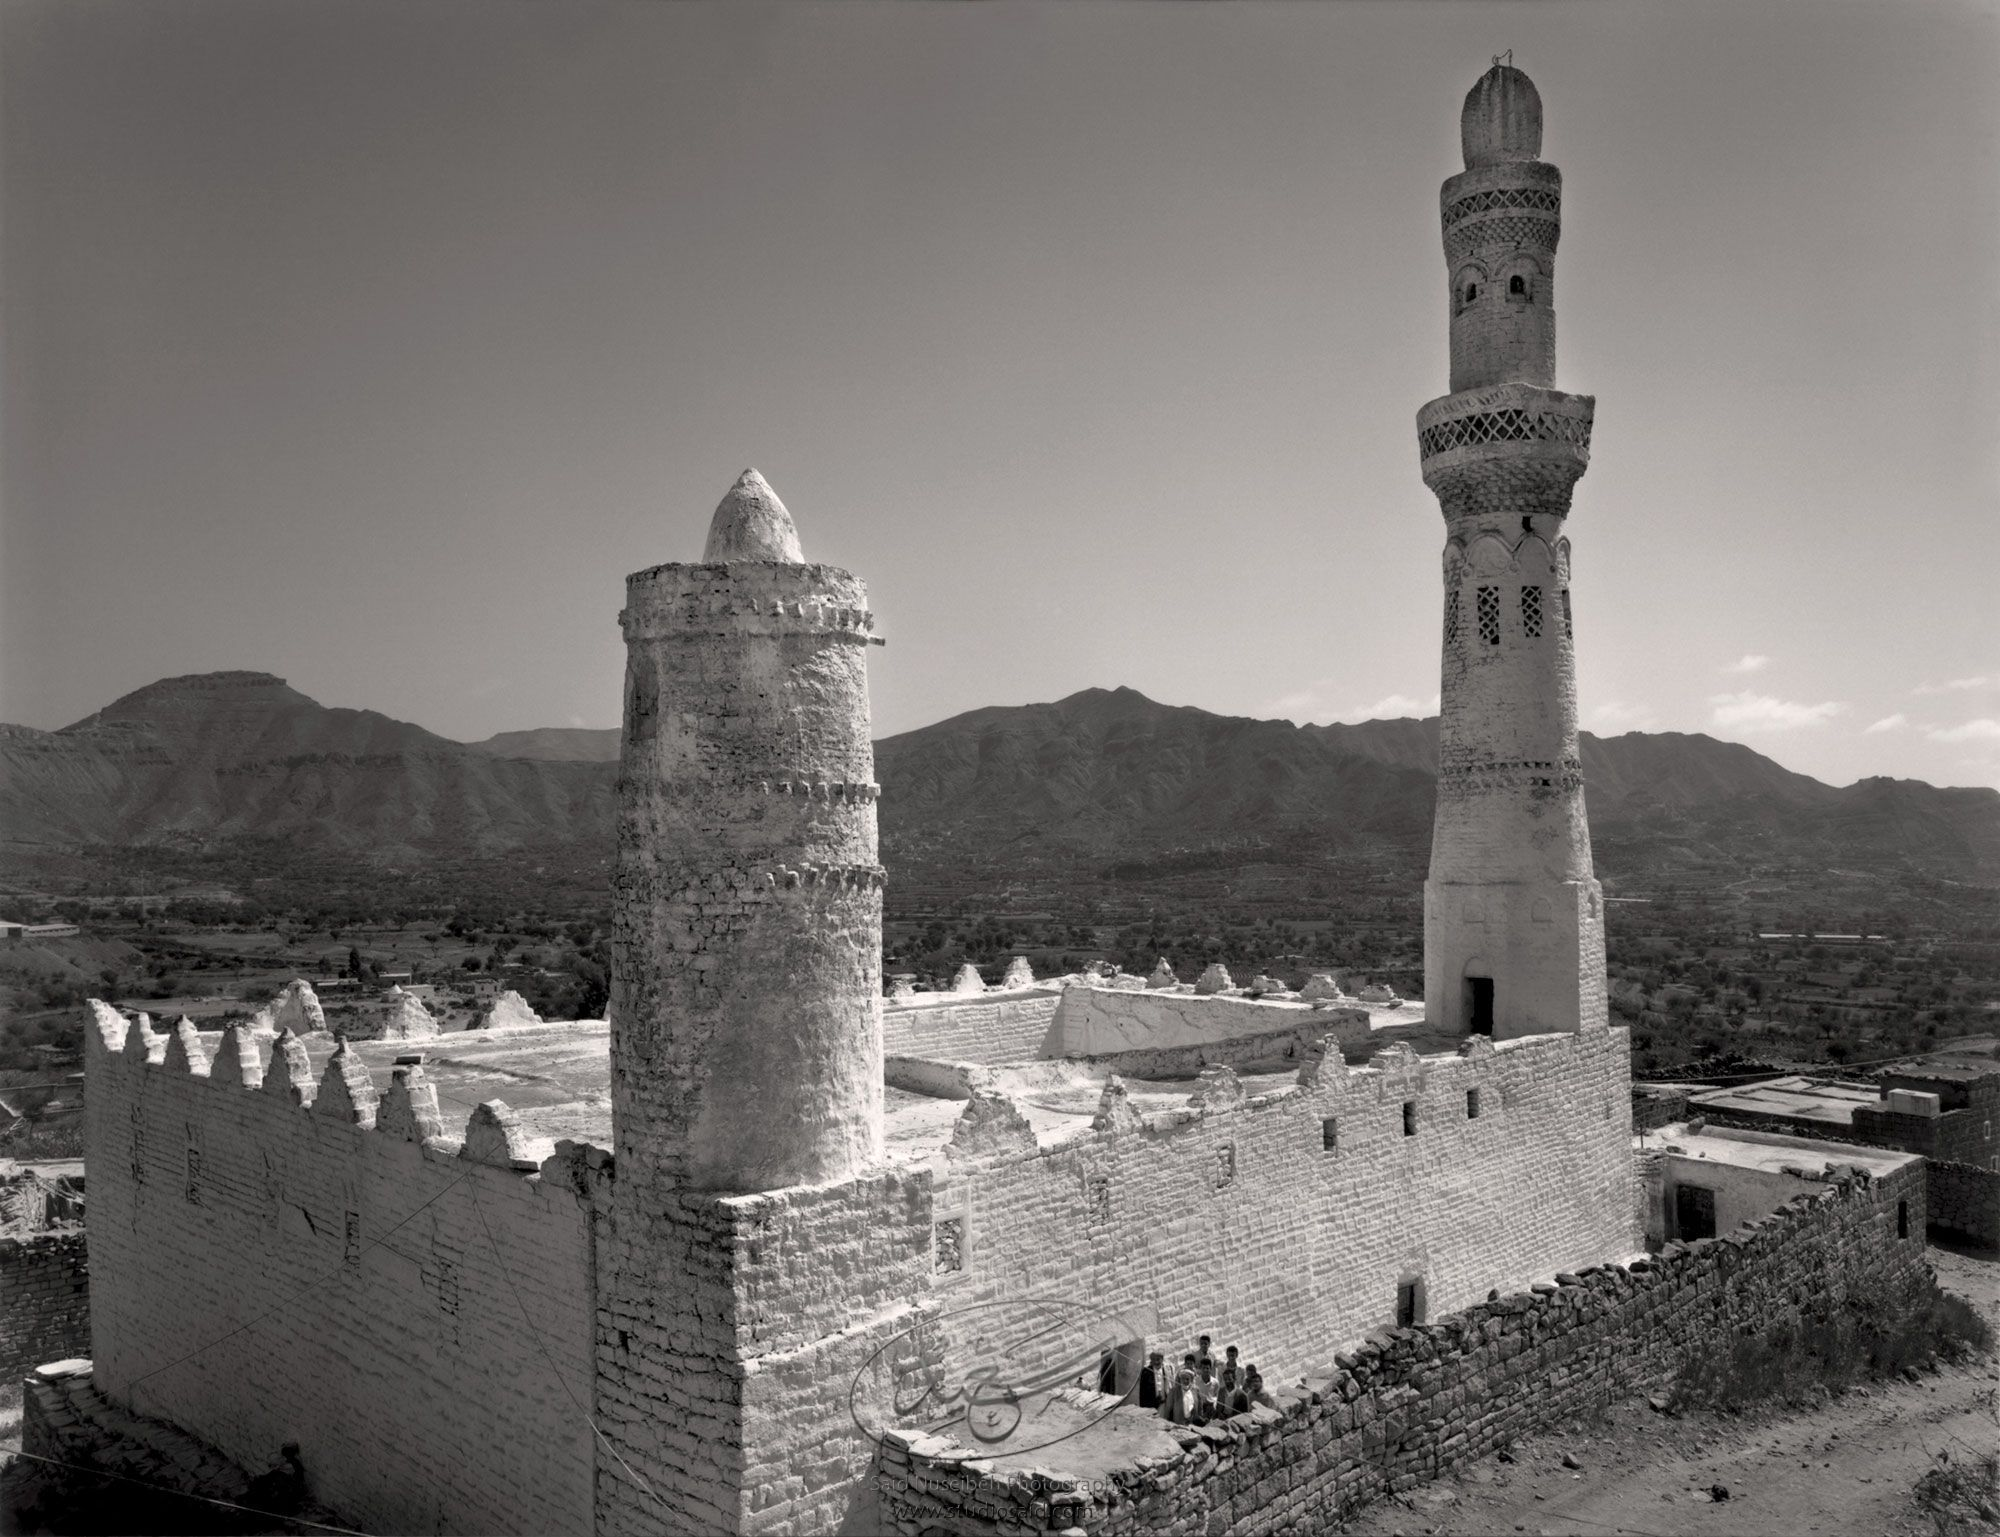 <i>Mukhtâr</i> & men gathered at door of mosque in village near Ibb. Yemen.